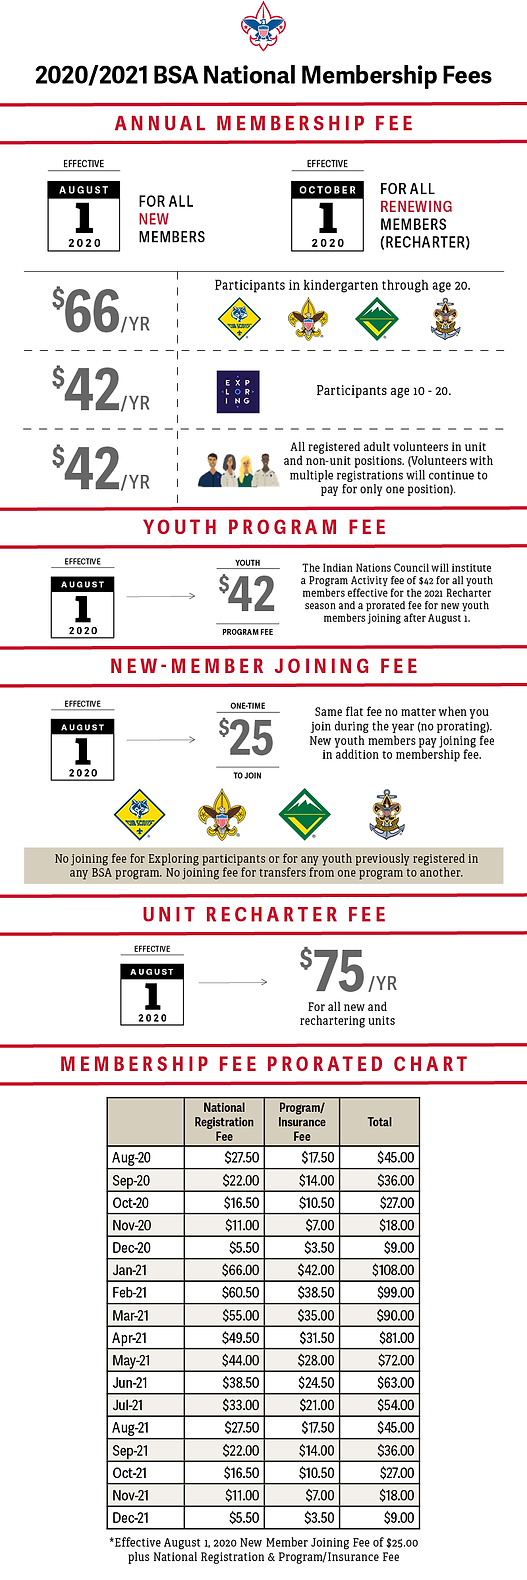 2020 Membership Fees Infographic with Pr